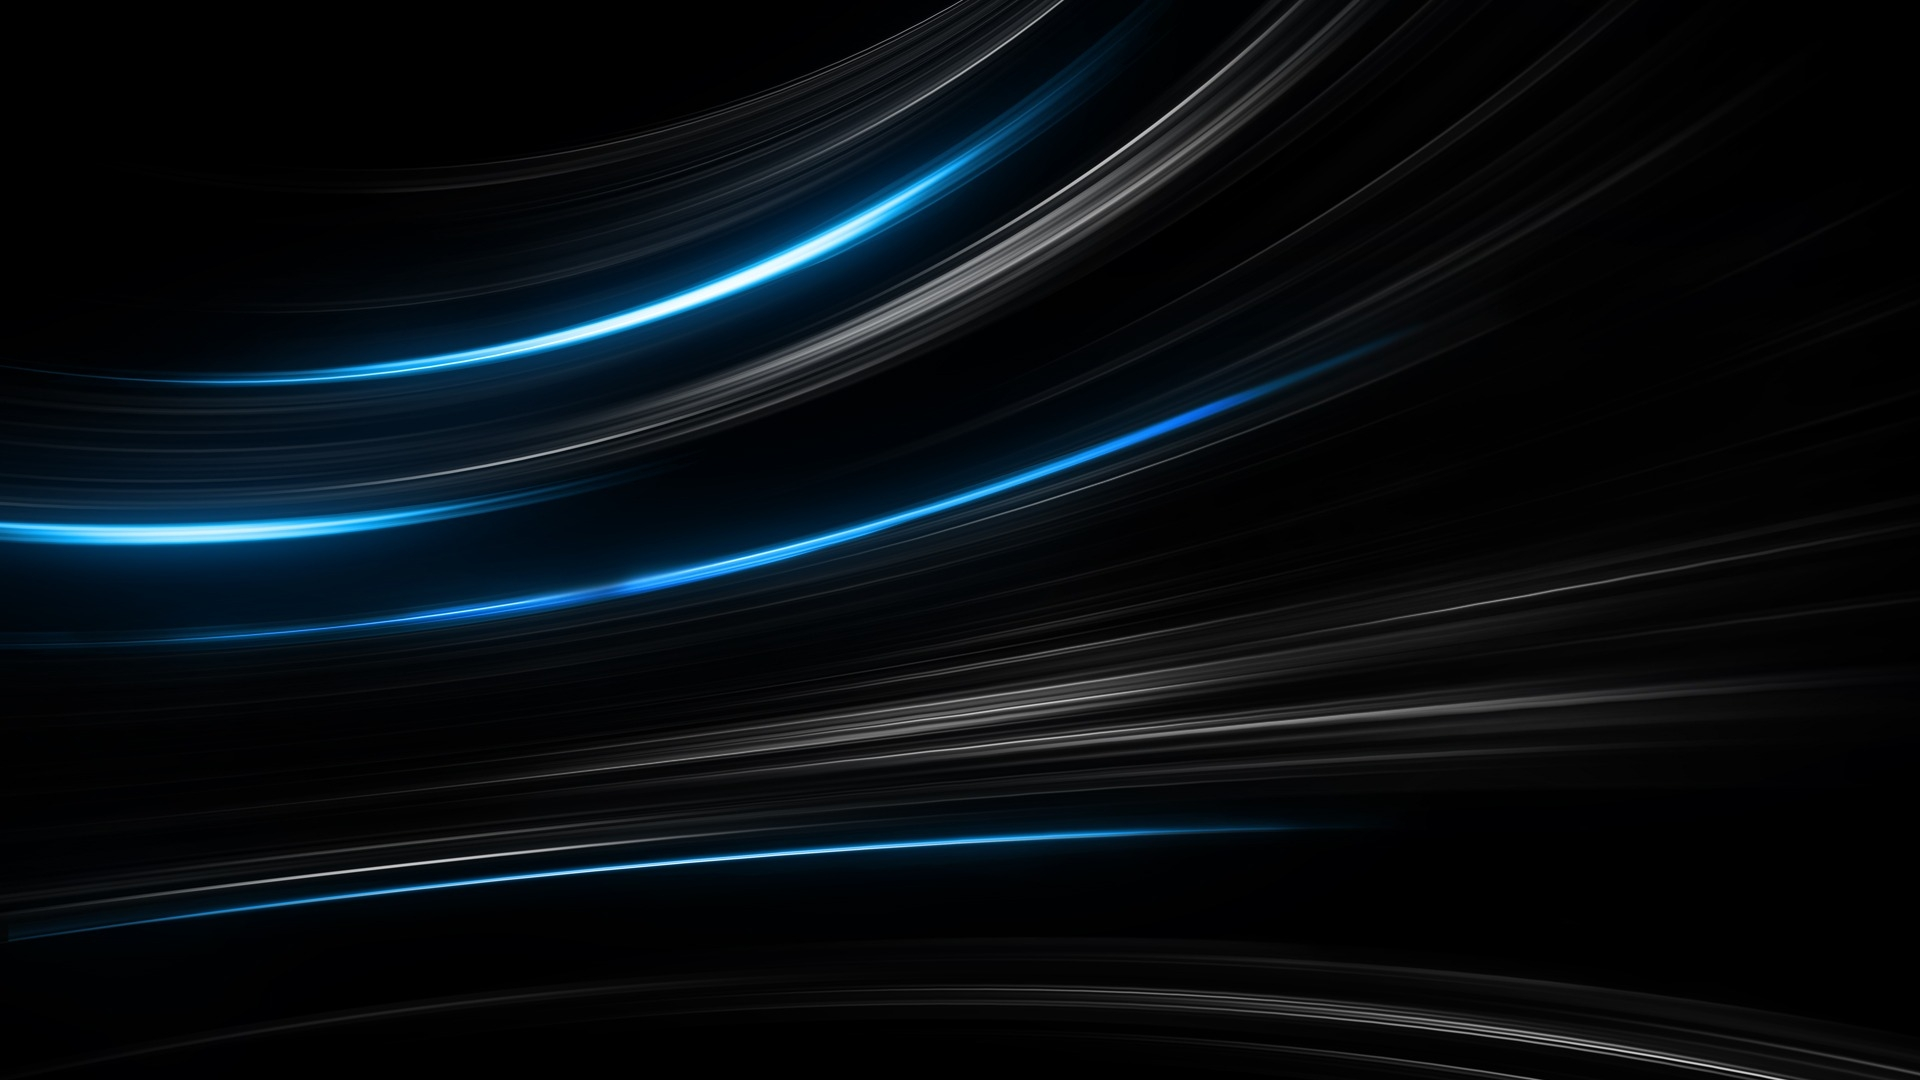 Free Download Black Blue Abstract Stripes Wallpaper Background